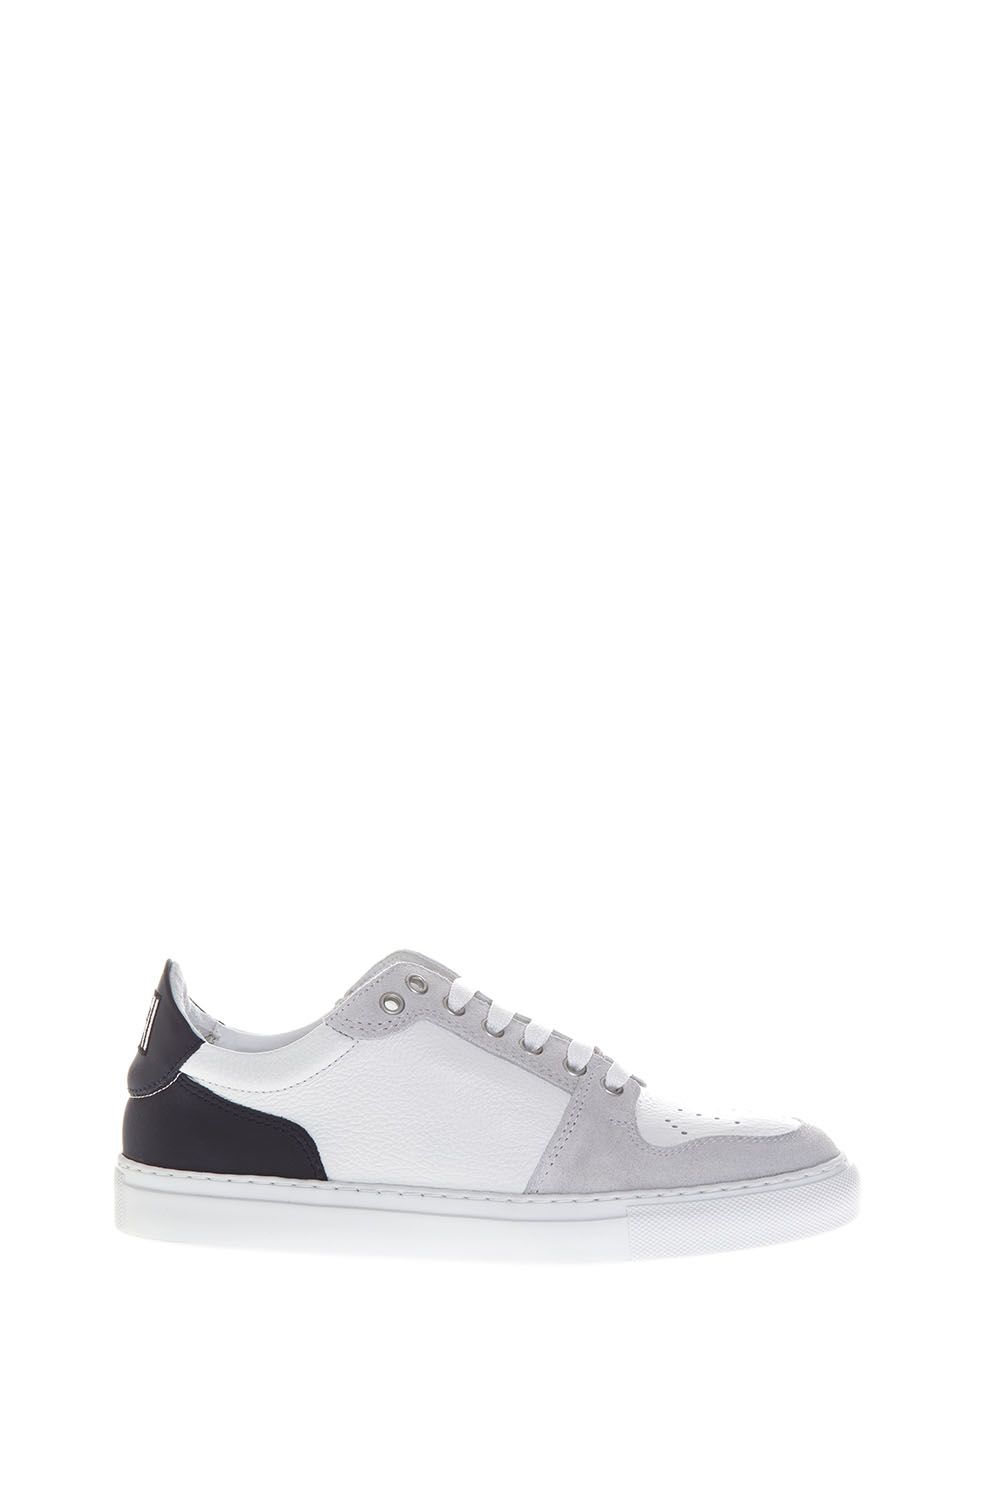 Ami Alexandre Mattiussi Low-top Leather Sneakers